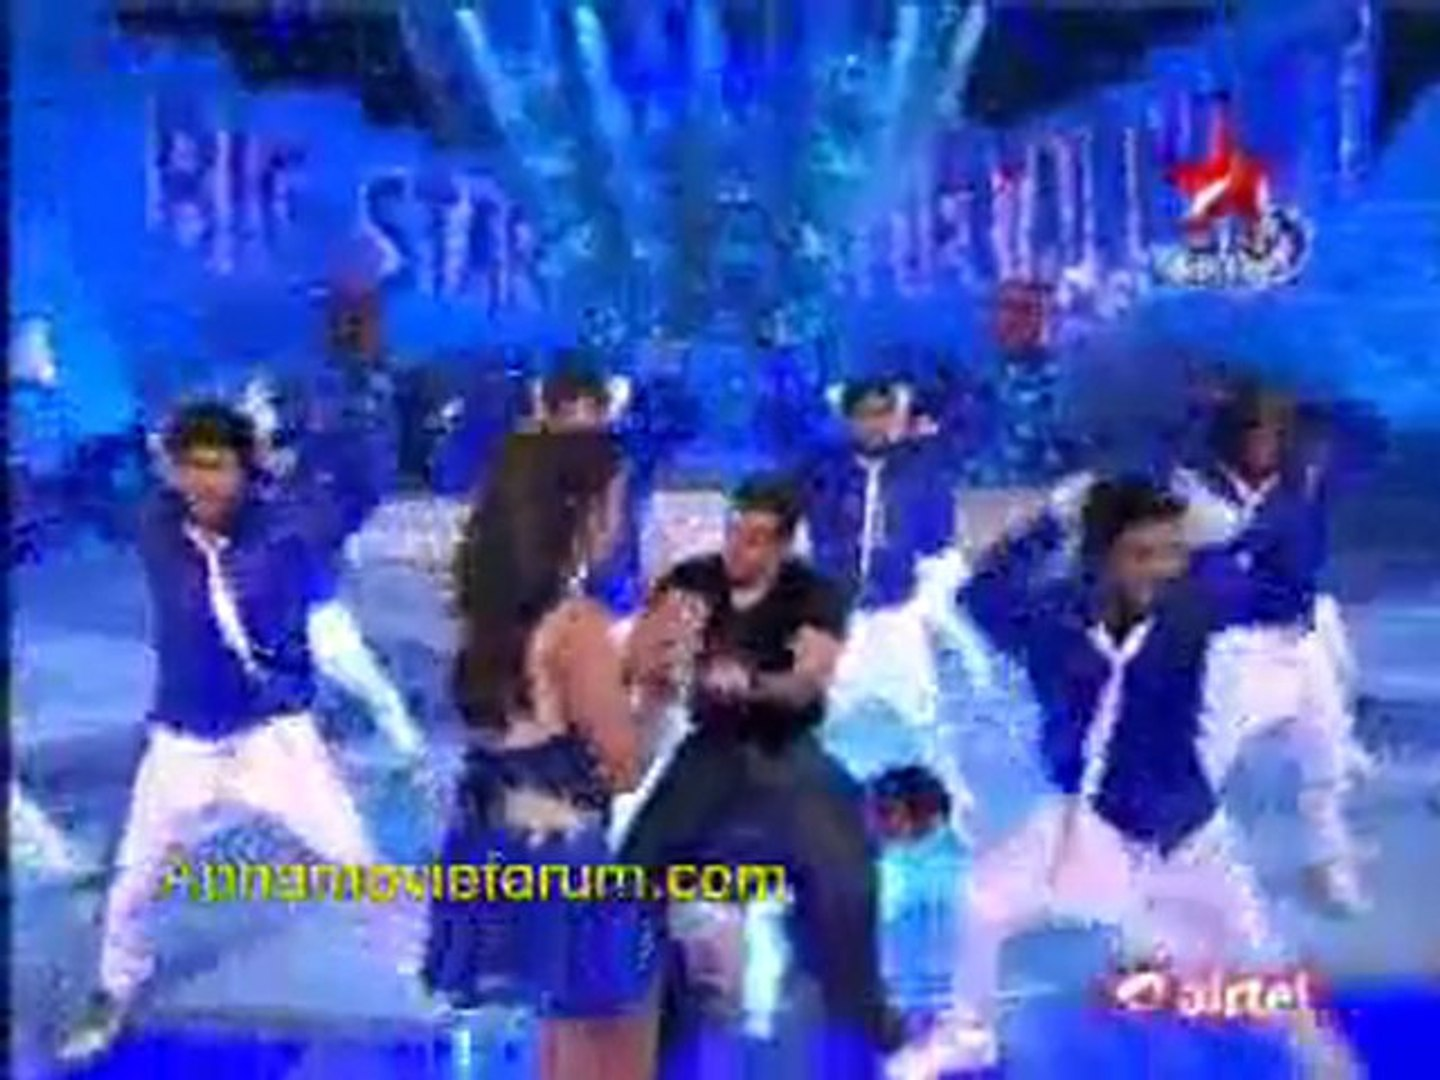 Big Star Entertainment Awards 2011 - 31st December 2011 Part4